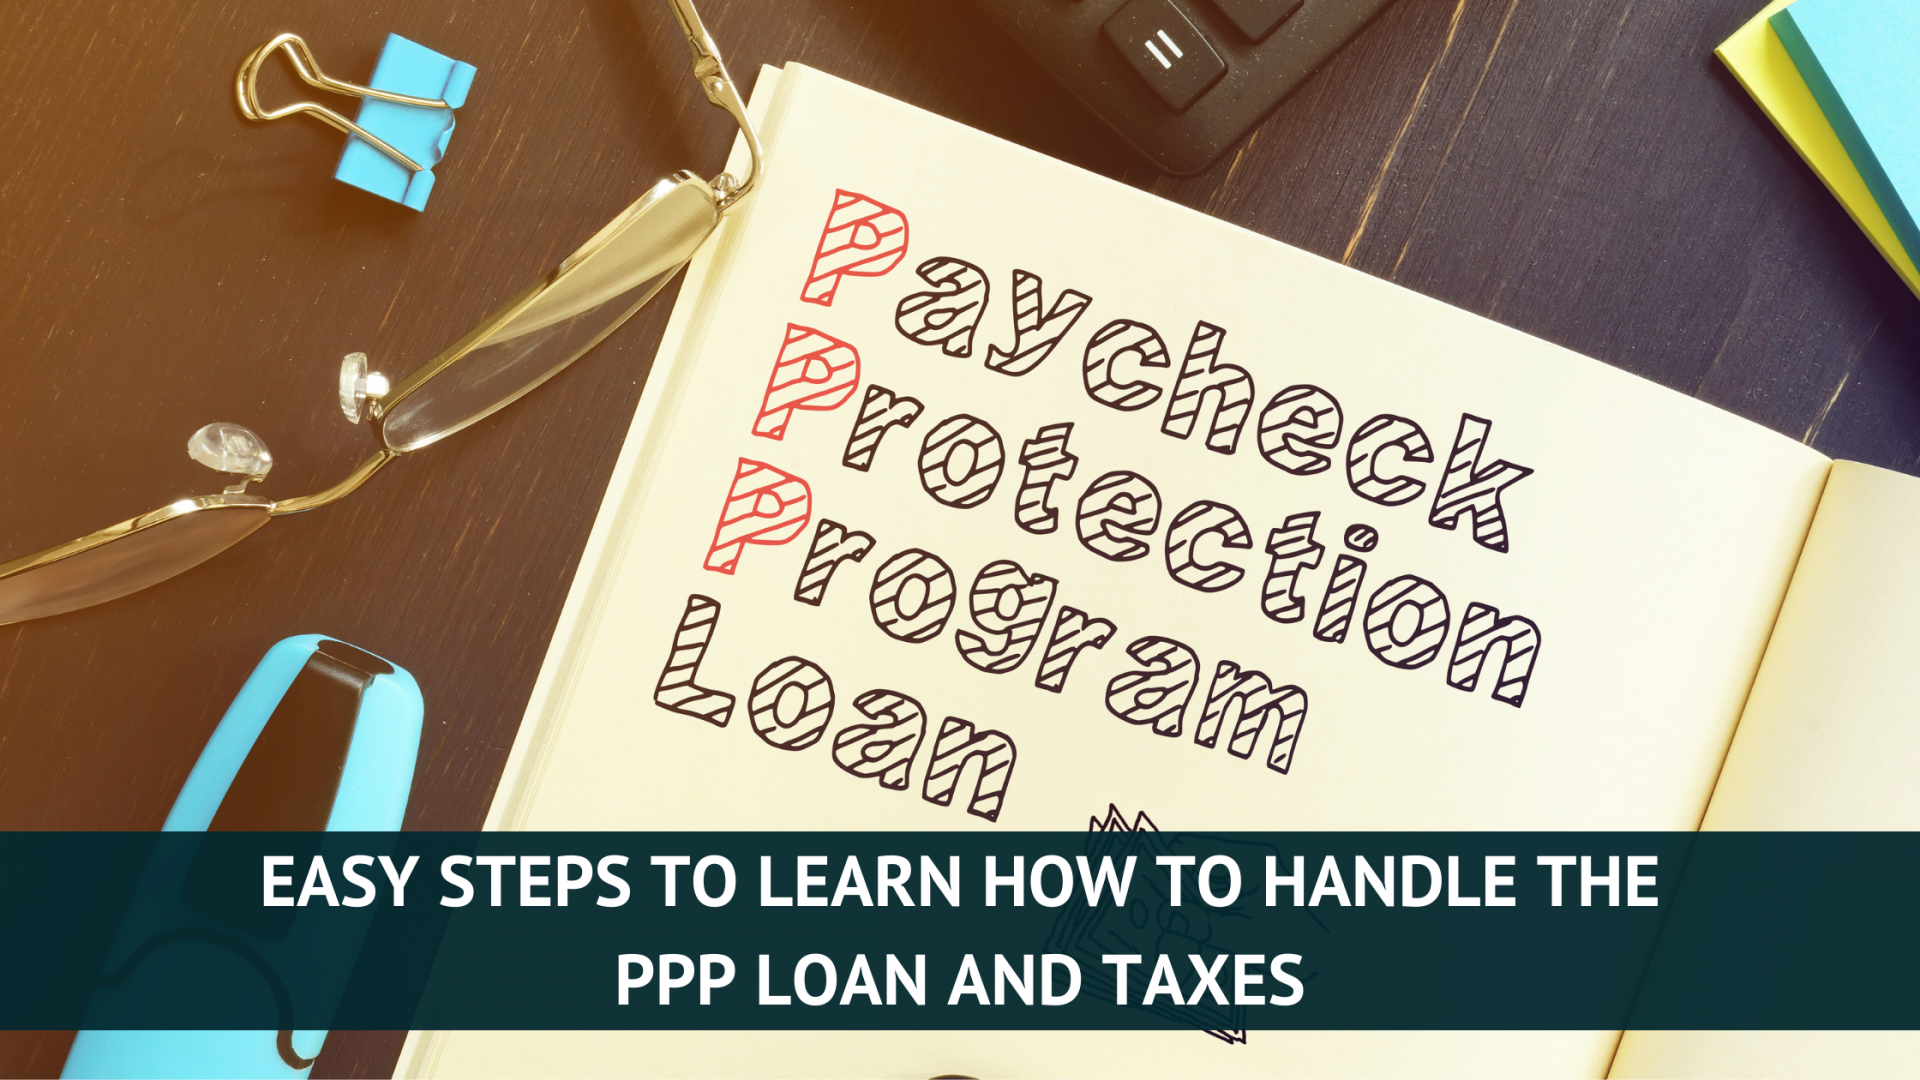 Easy steps to learn how to handle the PPP loan and taxes